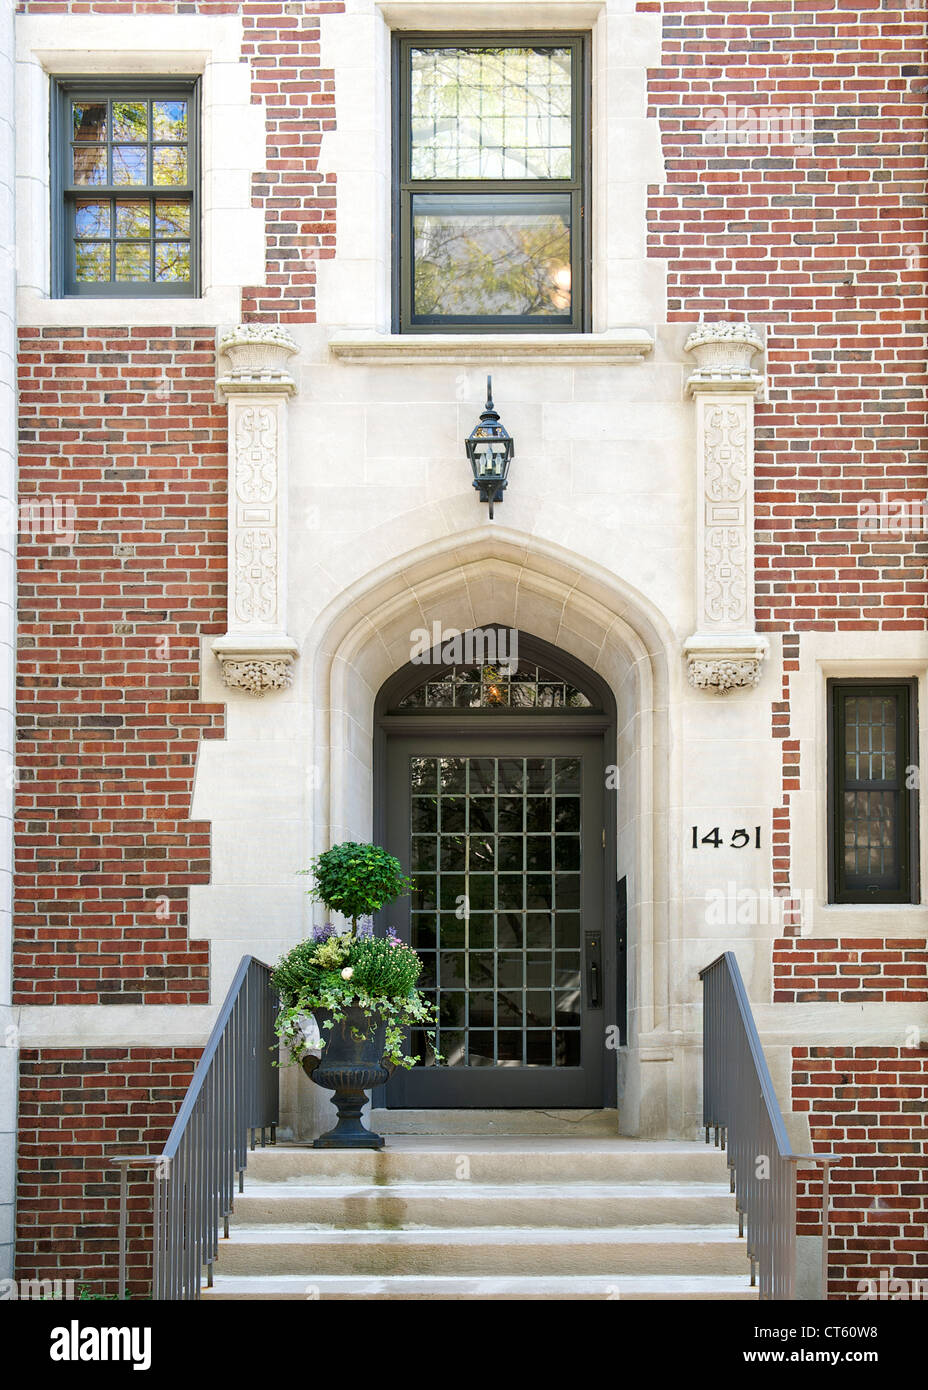 Peter Fortune House in the Astor district in Chicago. - Stock Image